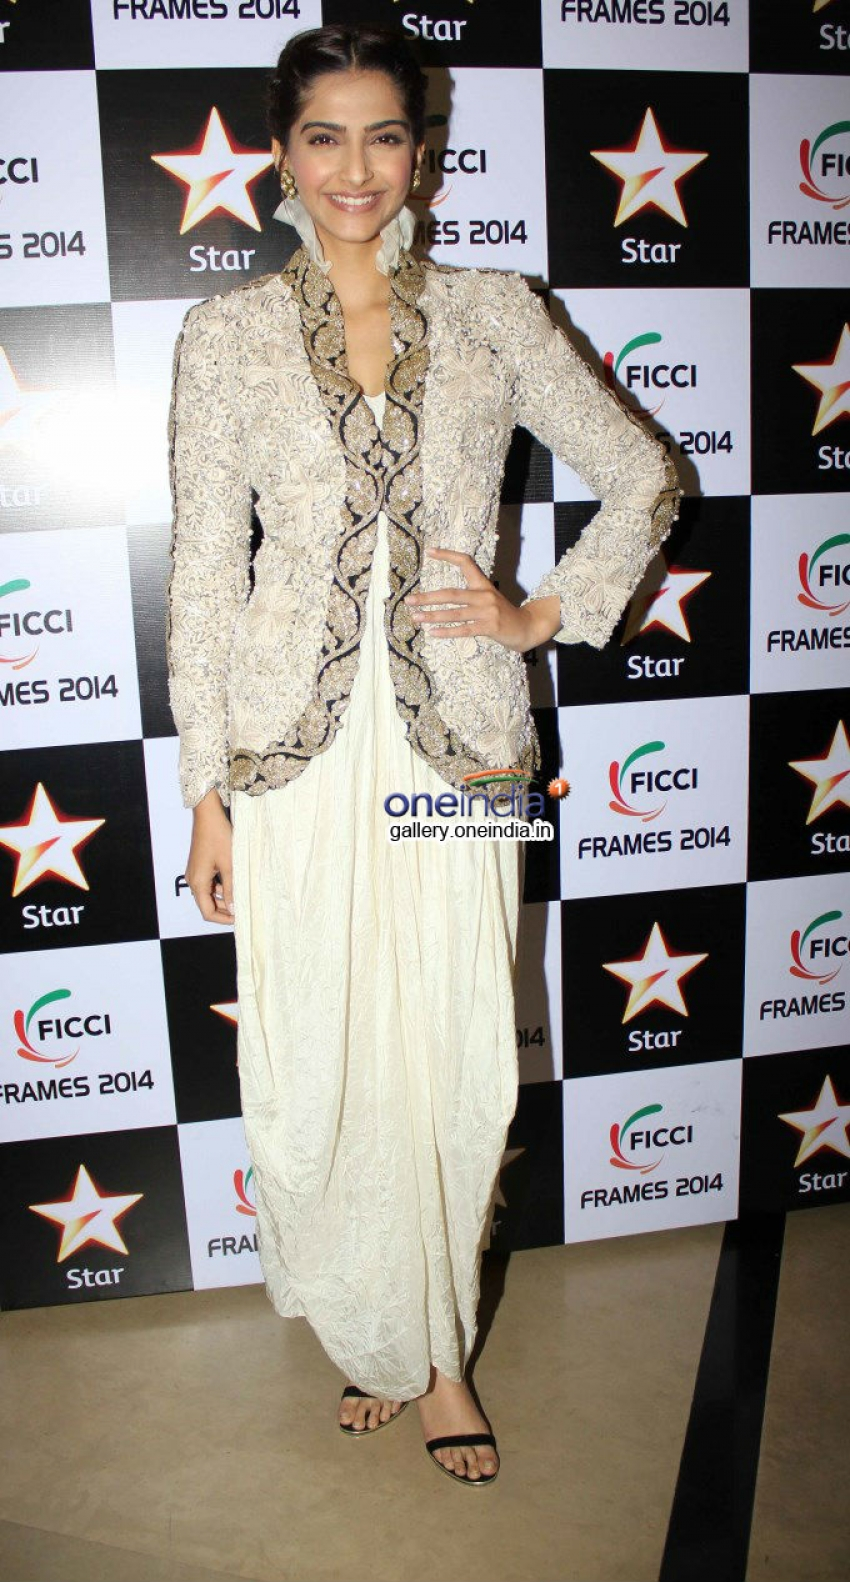 Sonam Kapoor and Kajol at FICCI Frames 2014 Photos